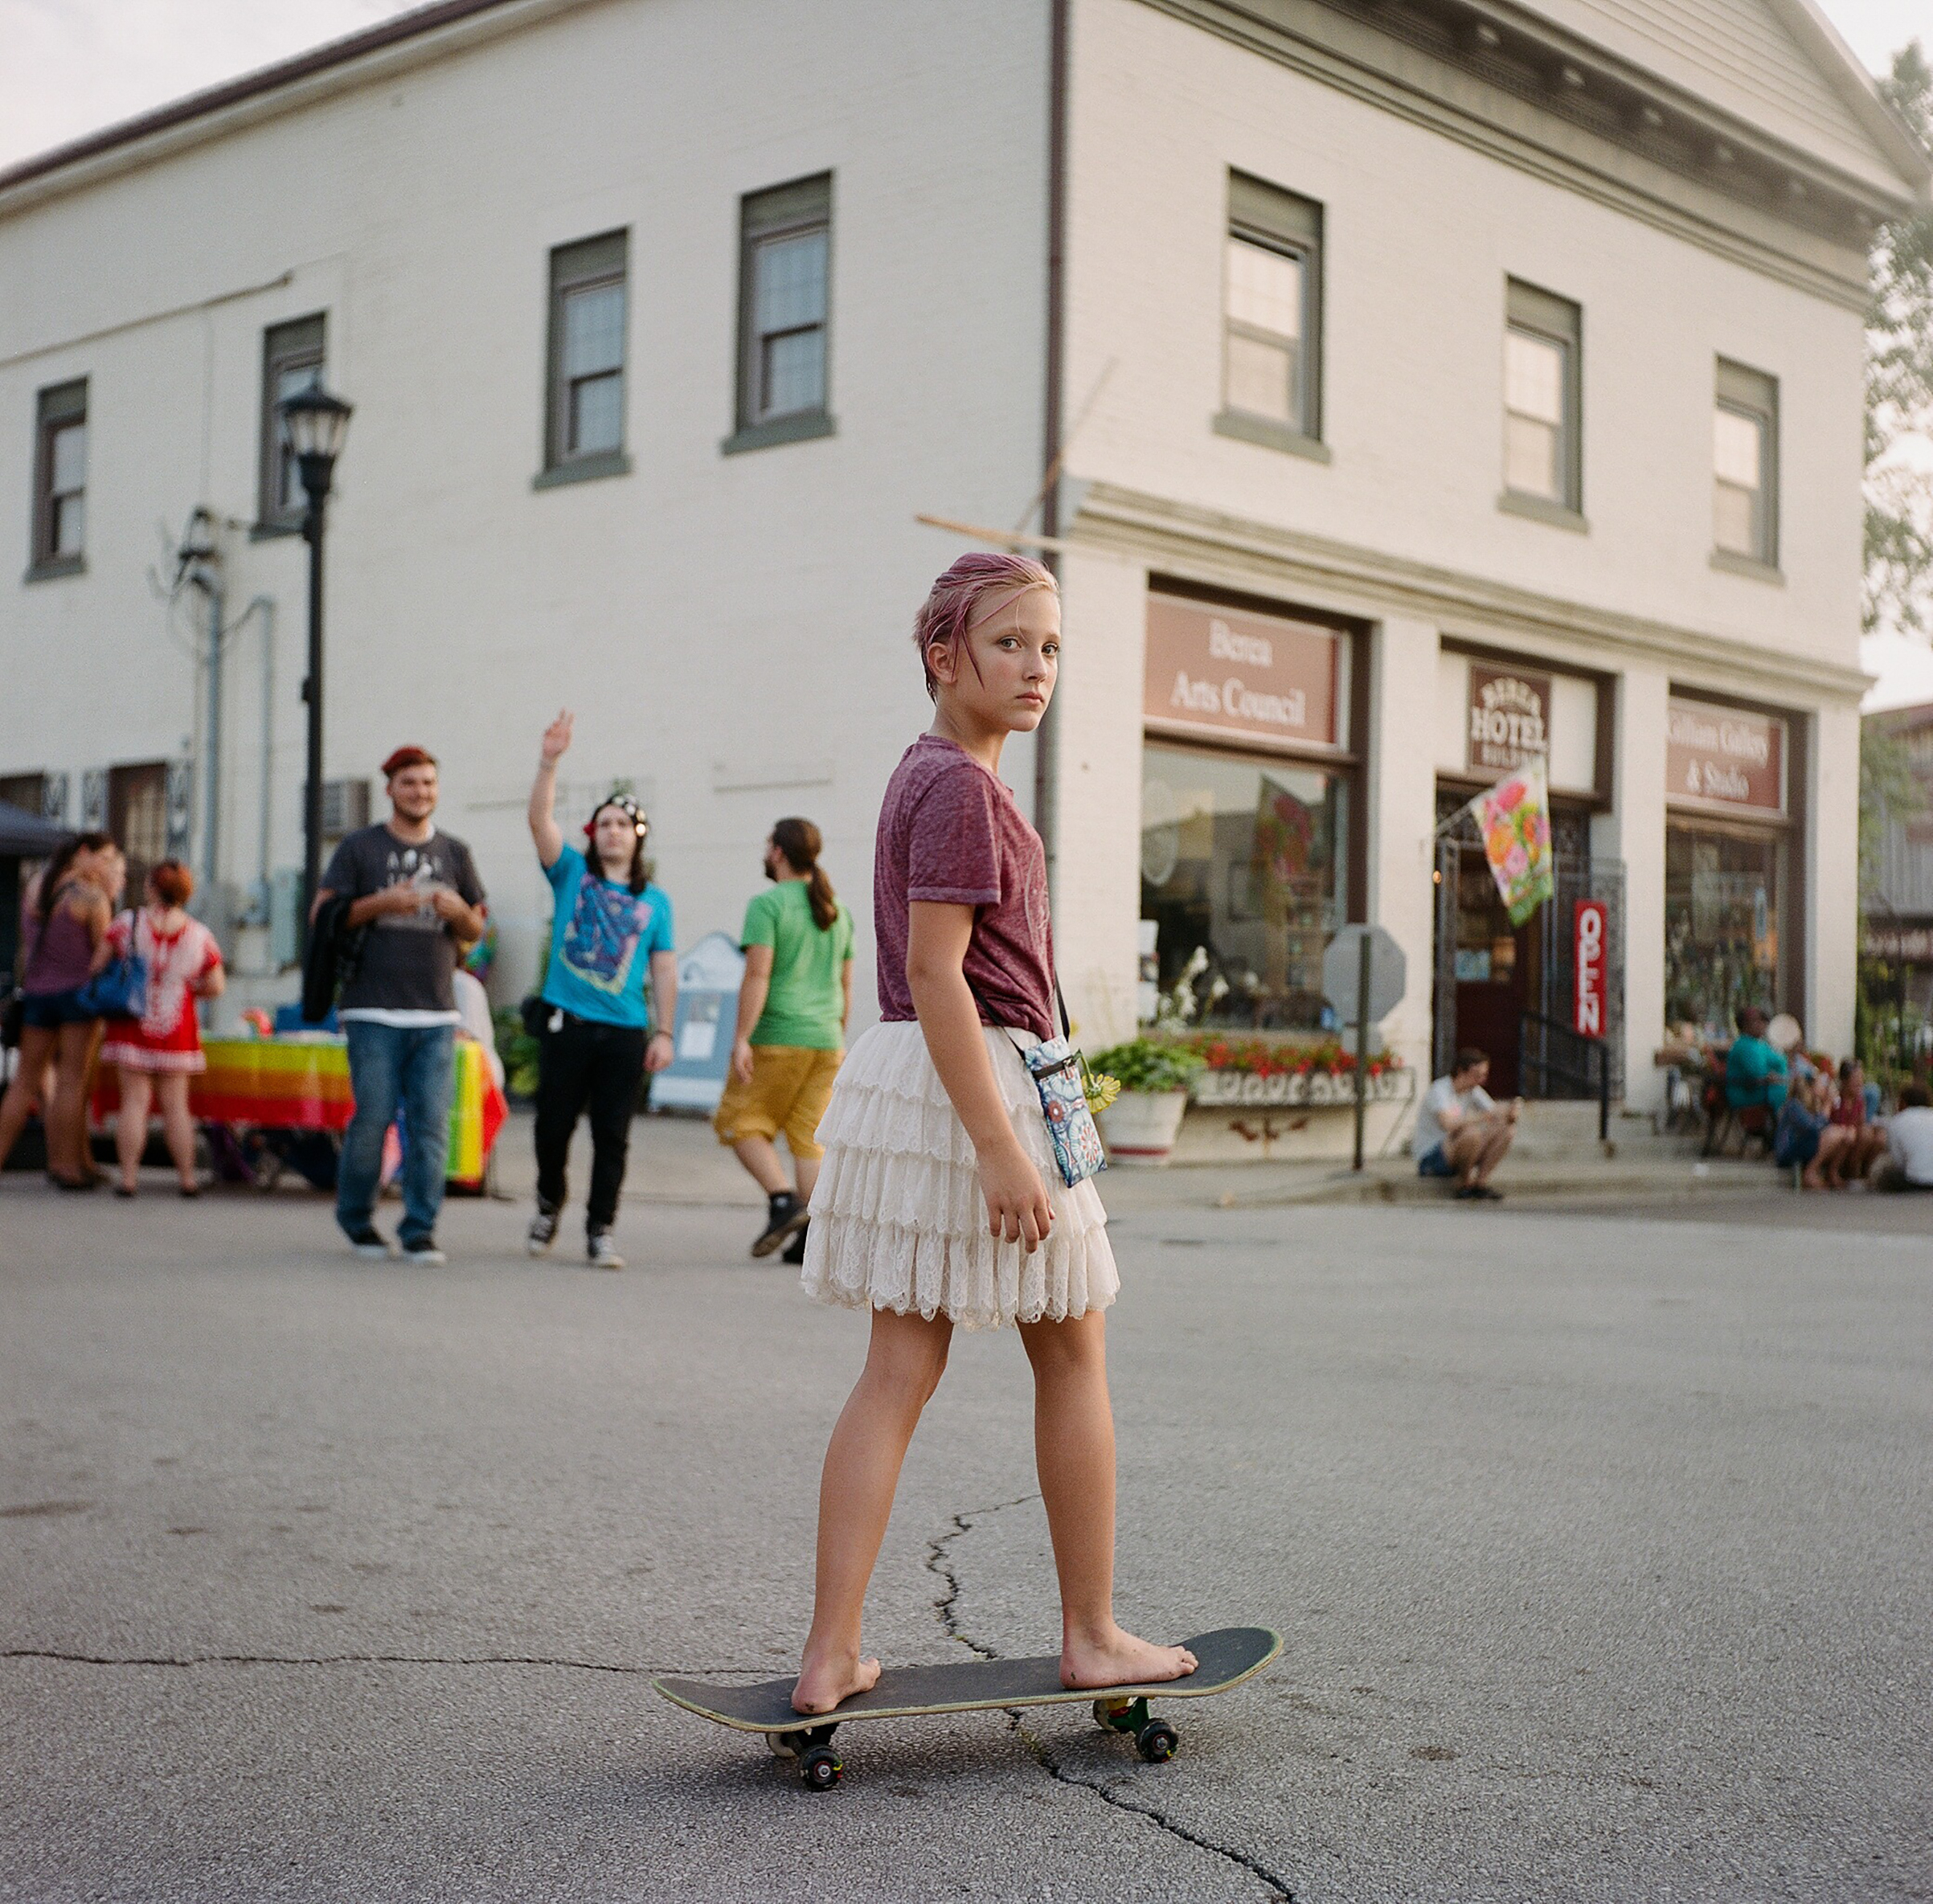 A young woman skates in front of an LGBT Pride booth at a music festival in Berea, KY